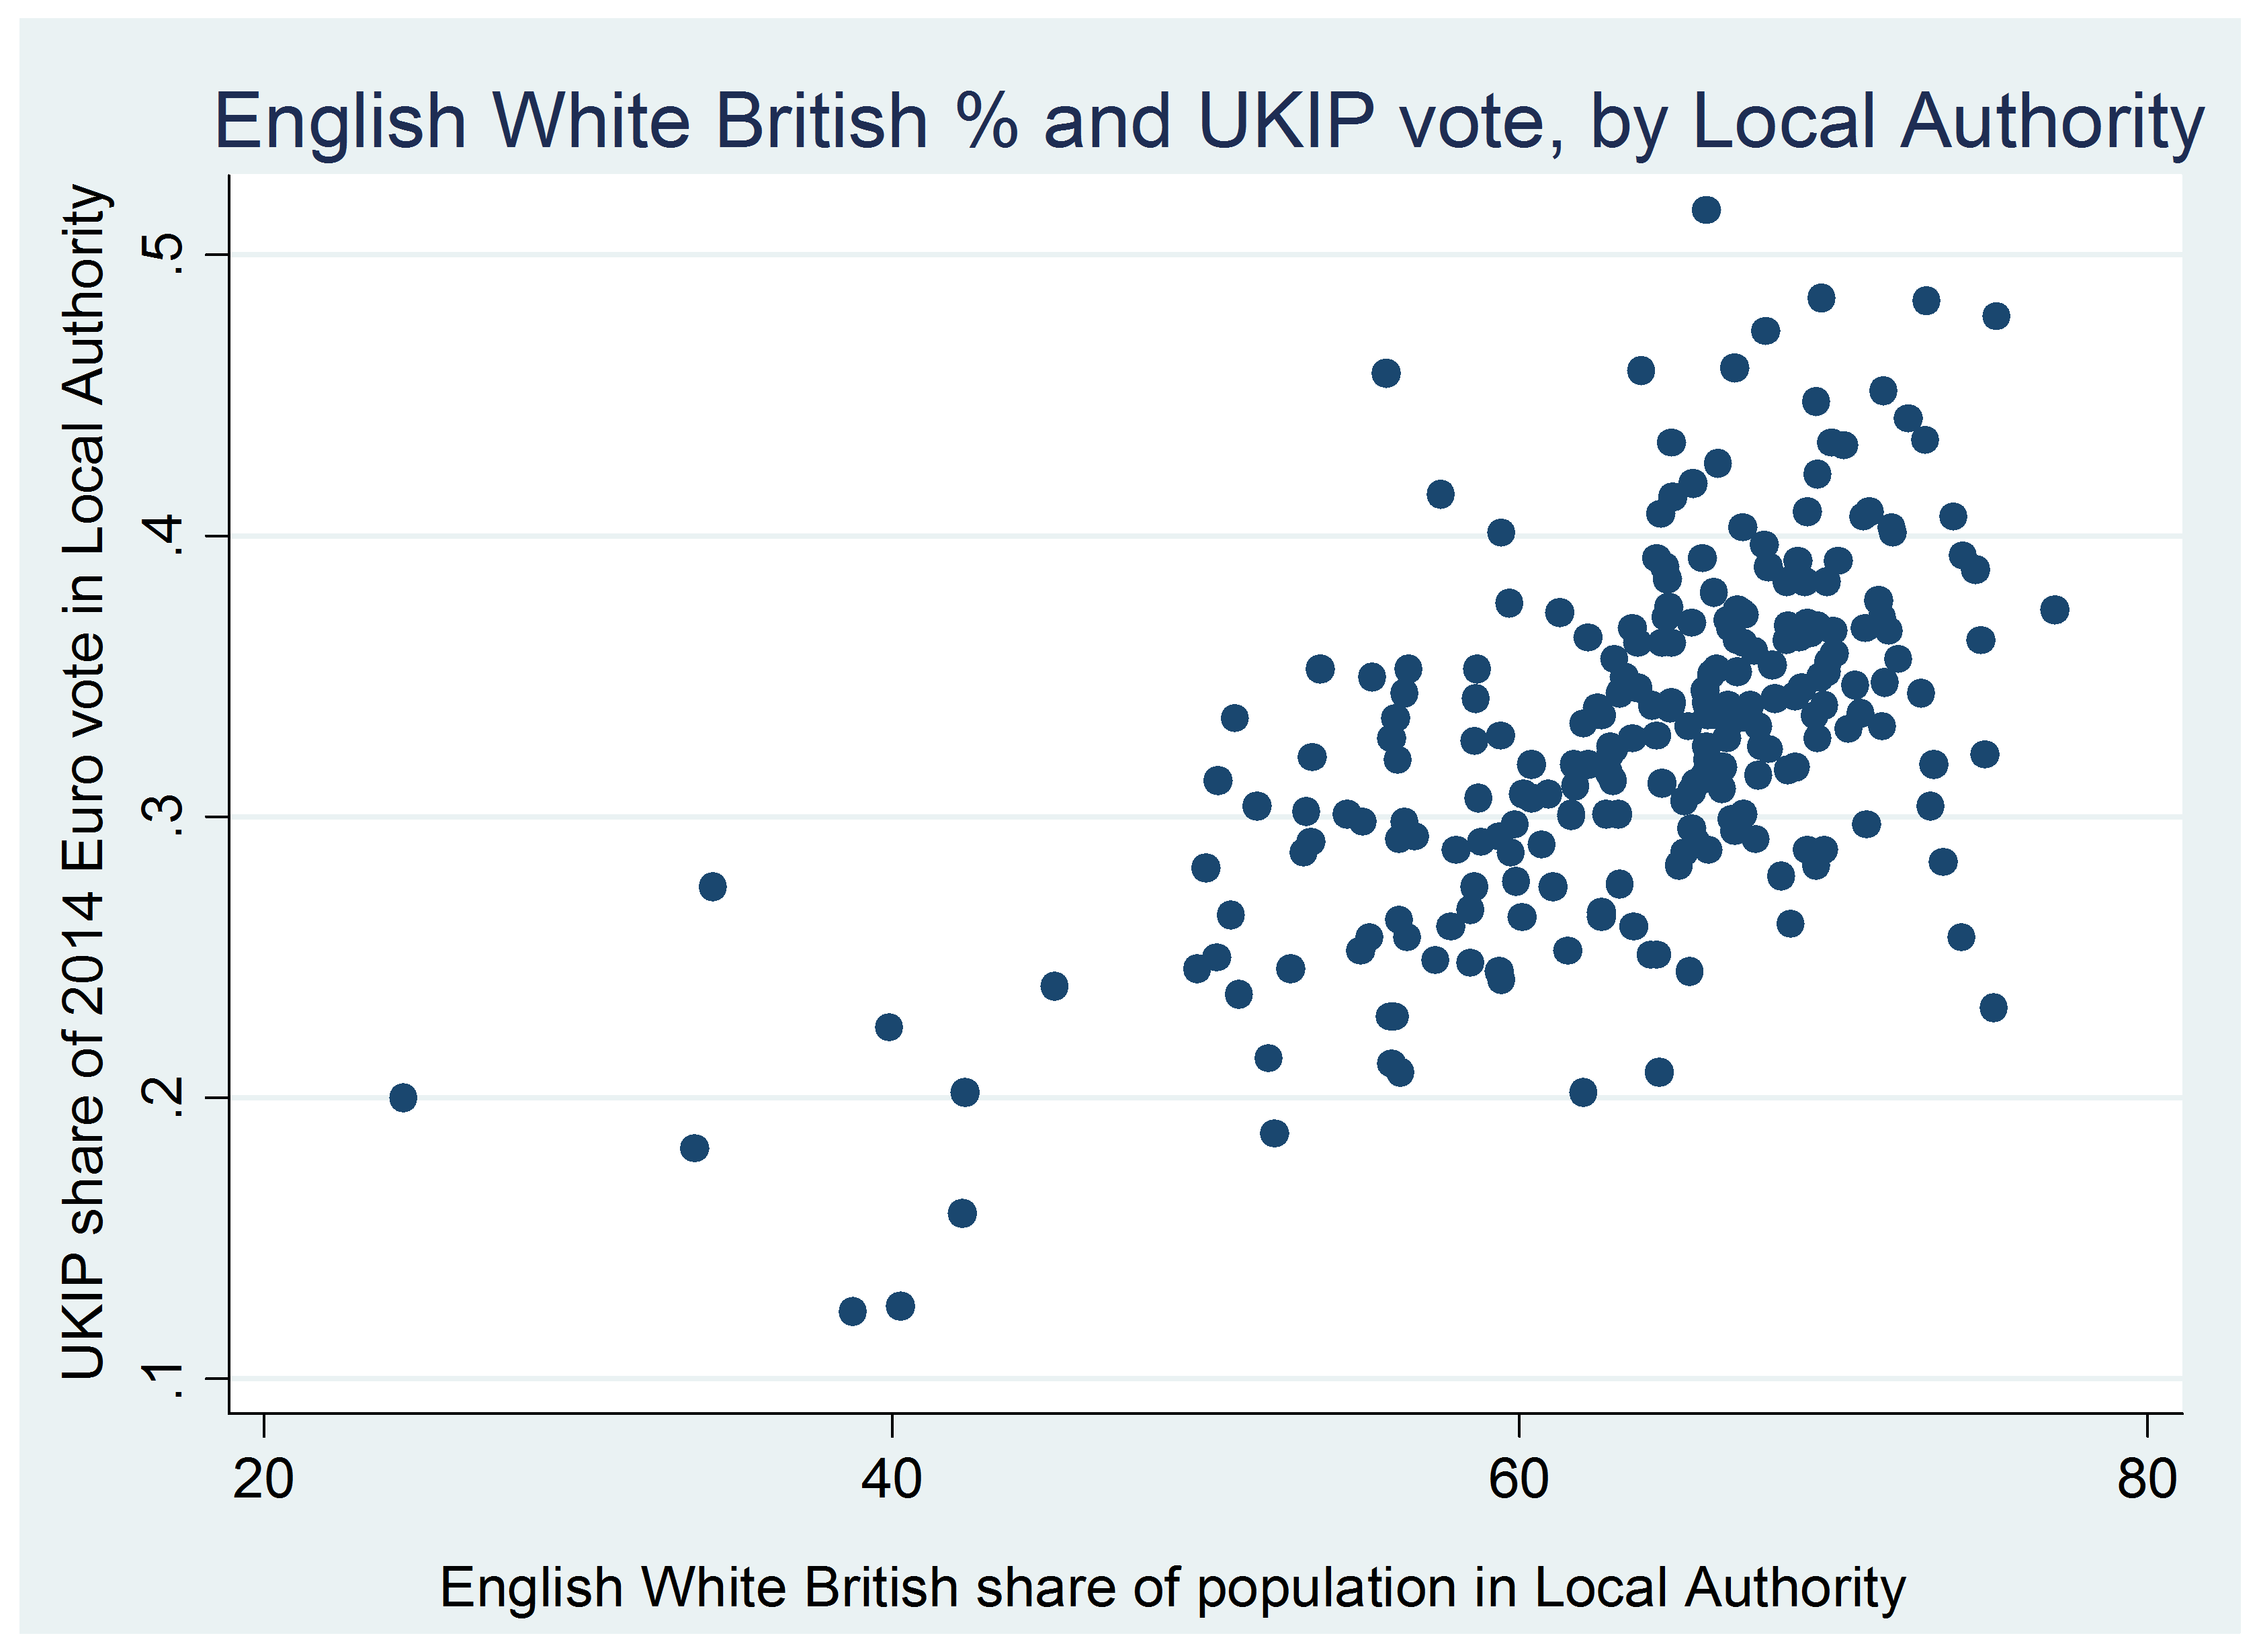 Prof eric kaufmann 10 gower street rochester and strood is 87 percent white british compared to the english average of 80 percent and 75 percent of its white british population identifies as nvjuhfo Image collections